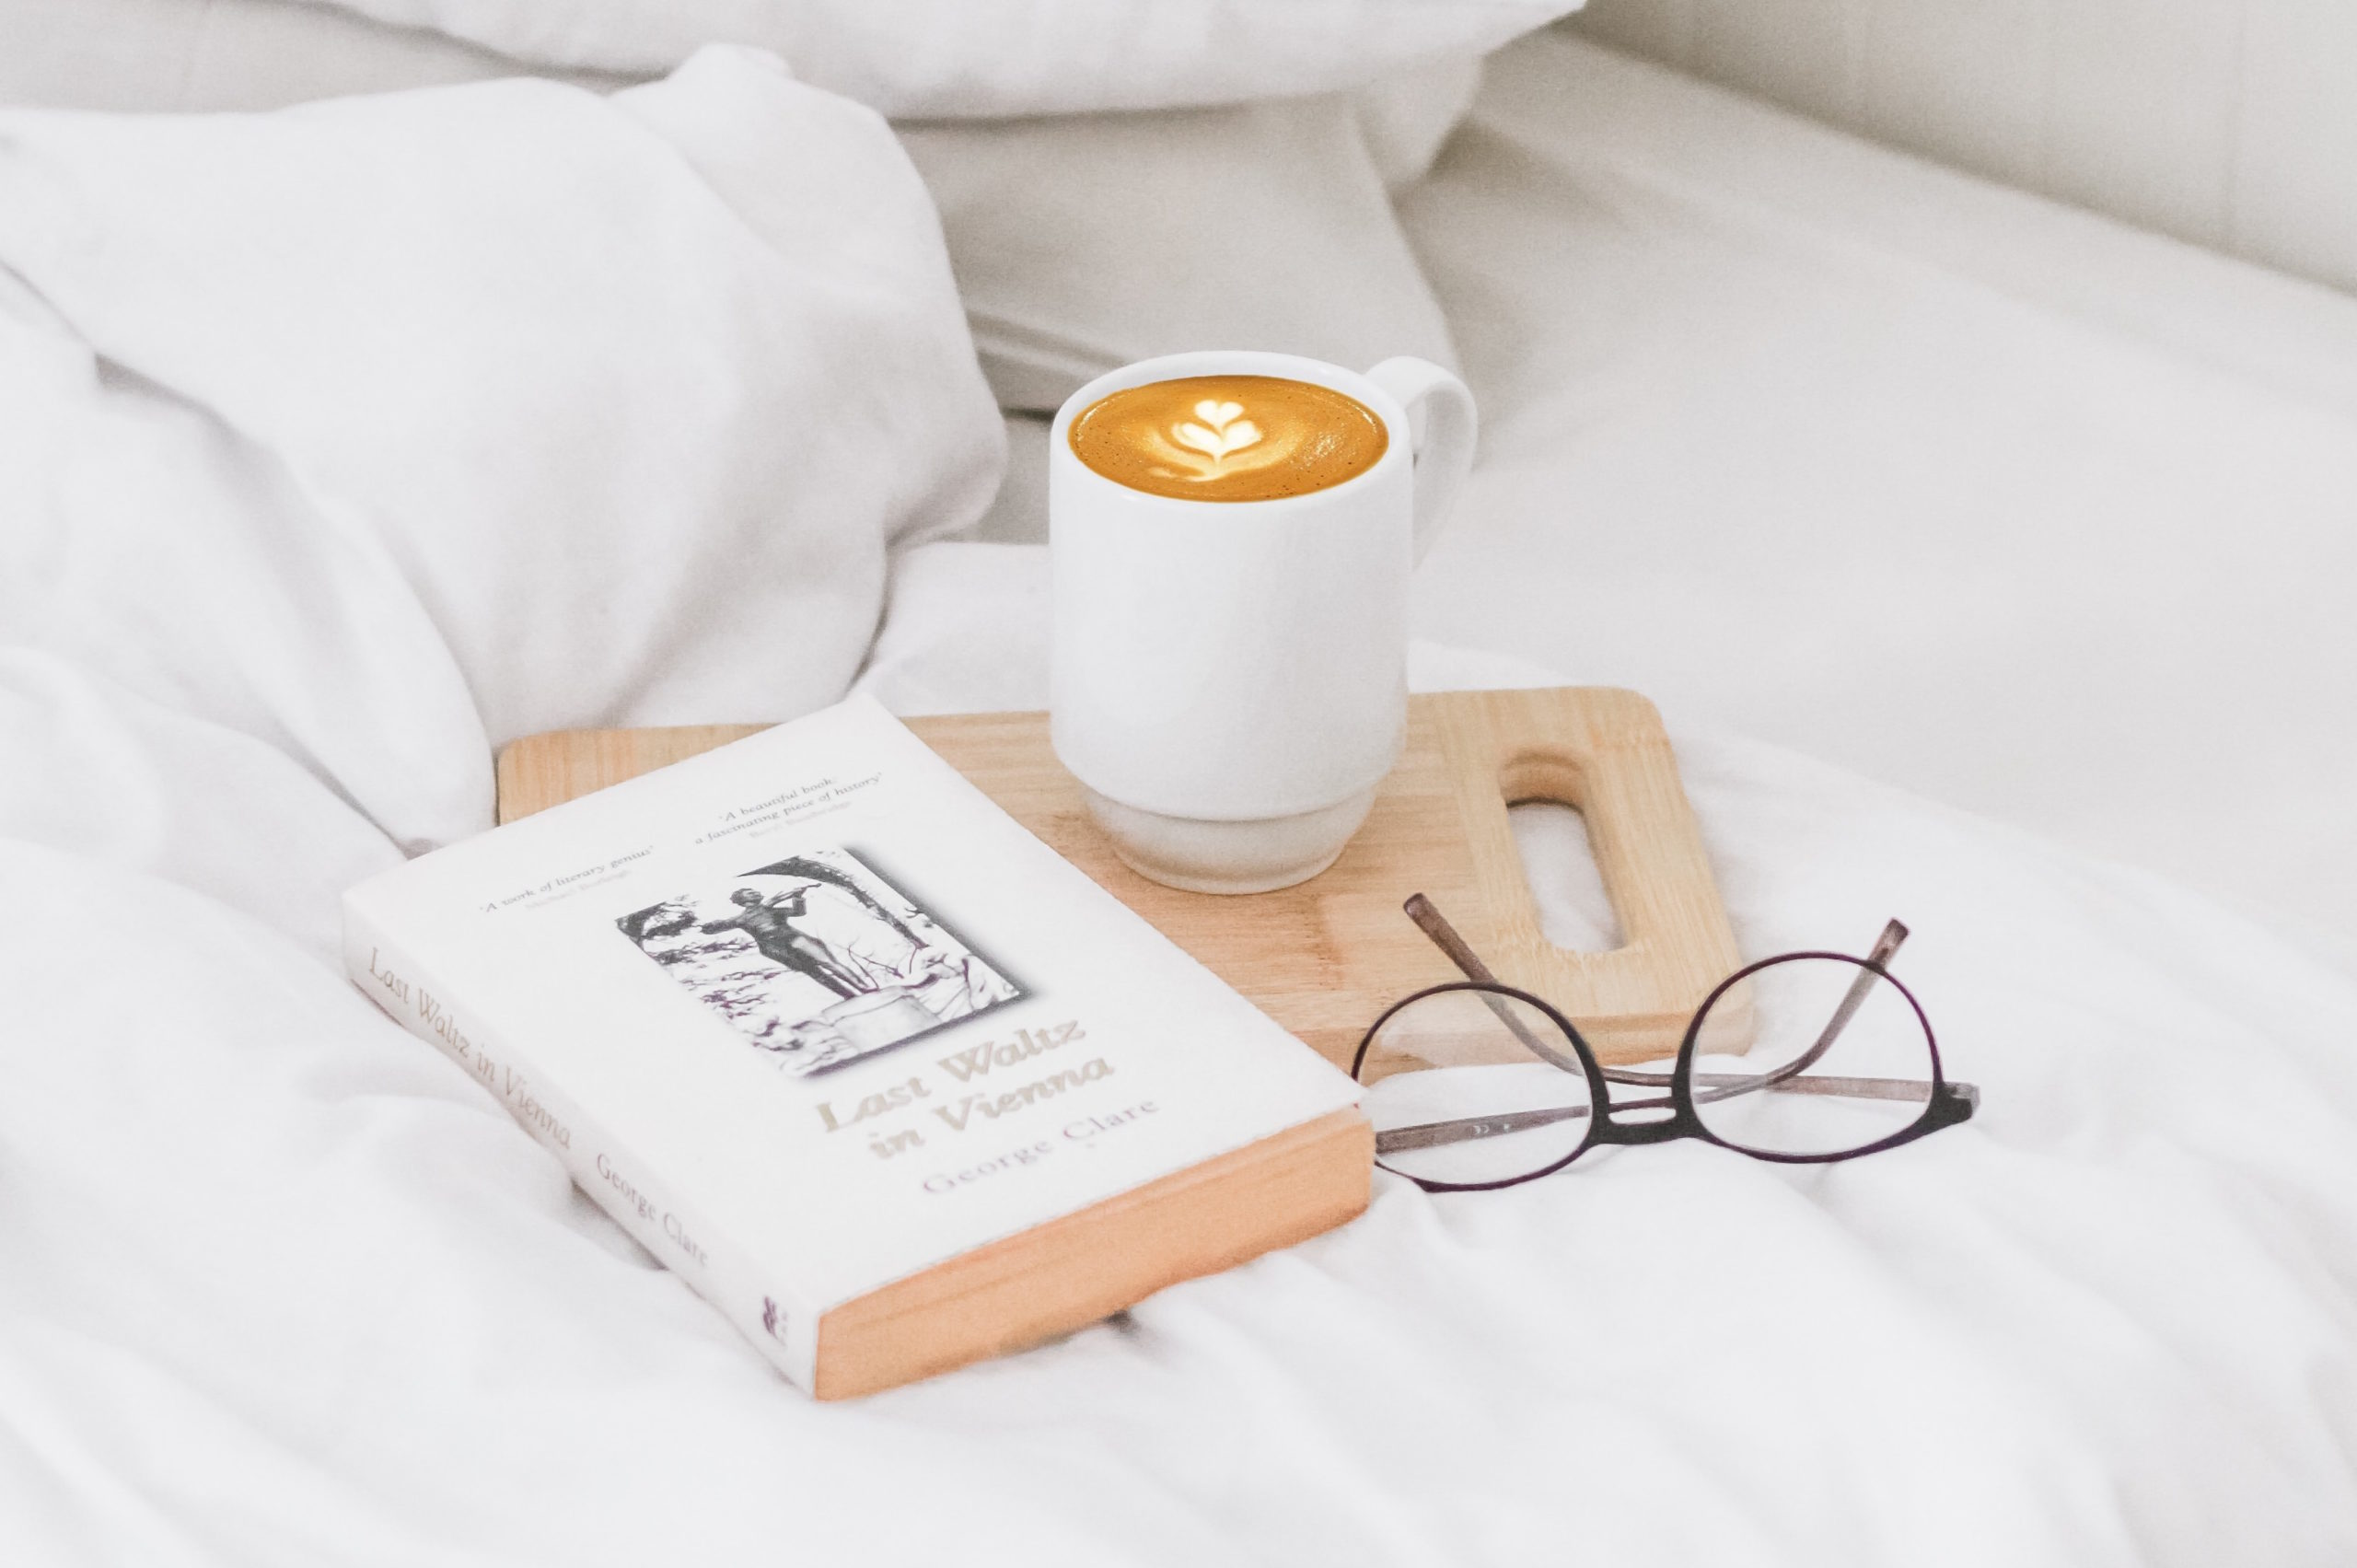 Book, mug and reading glasses on a bed